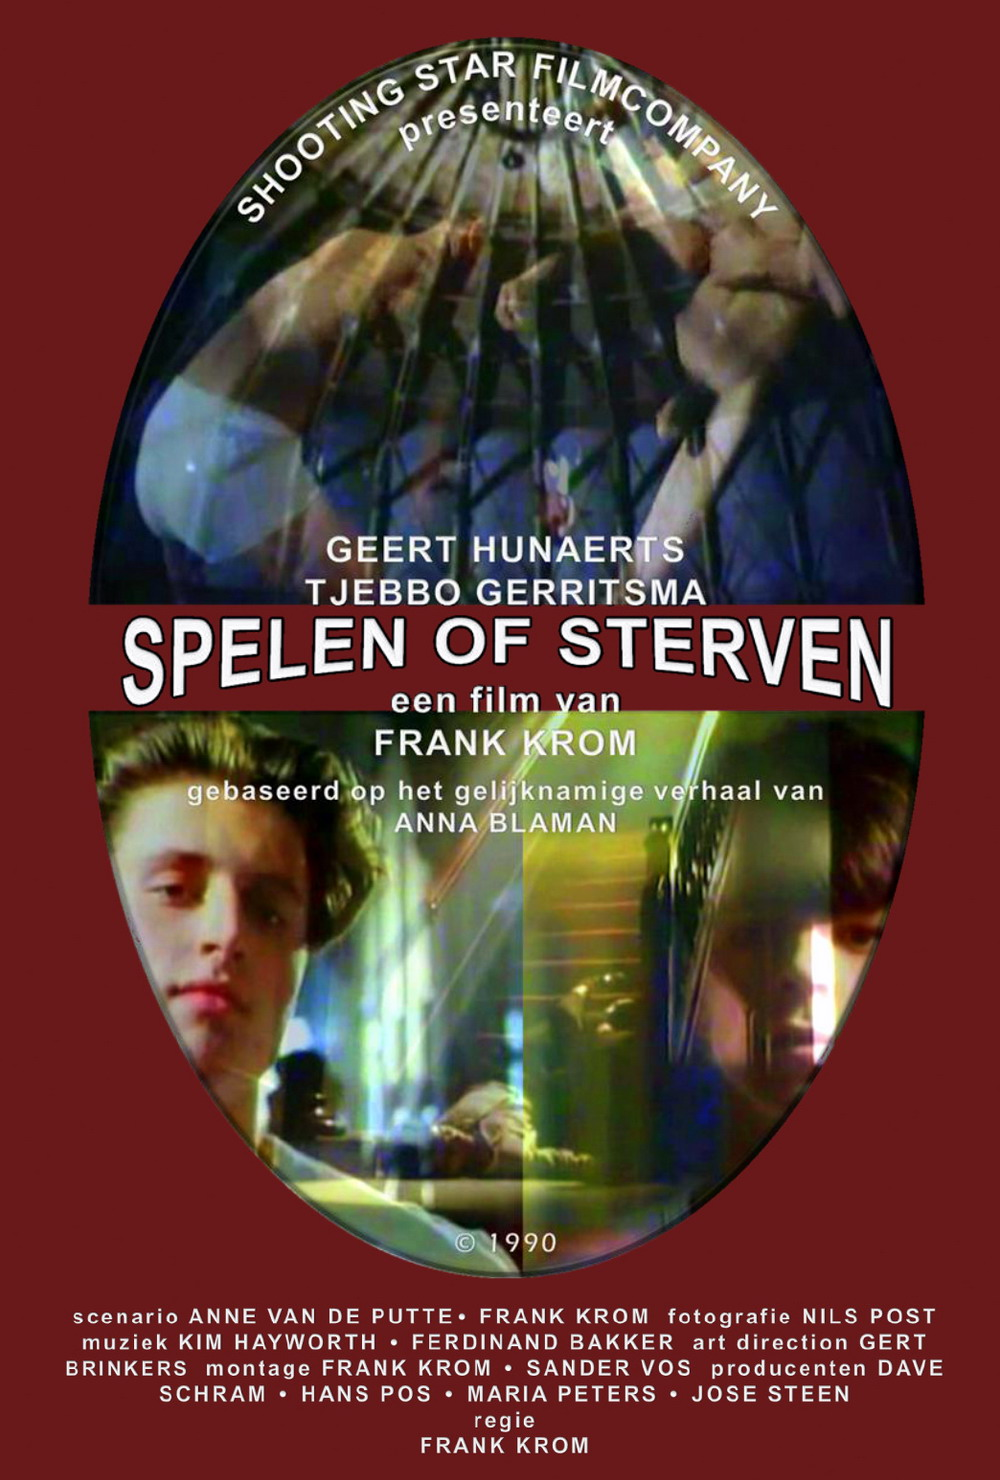 Spelen of Sterven (1990) To Play or To Die